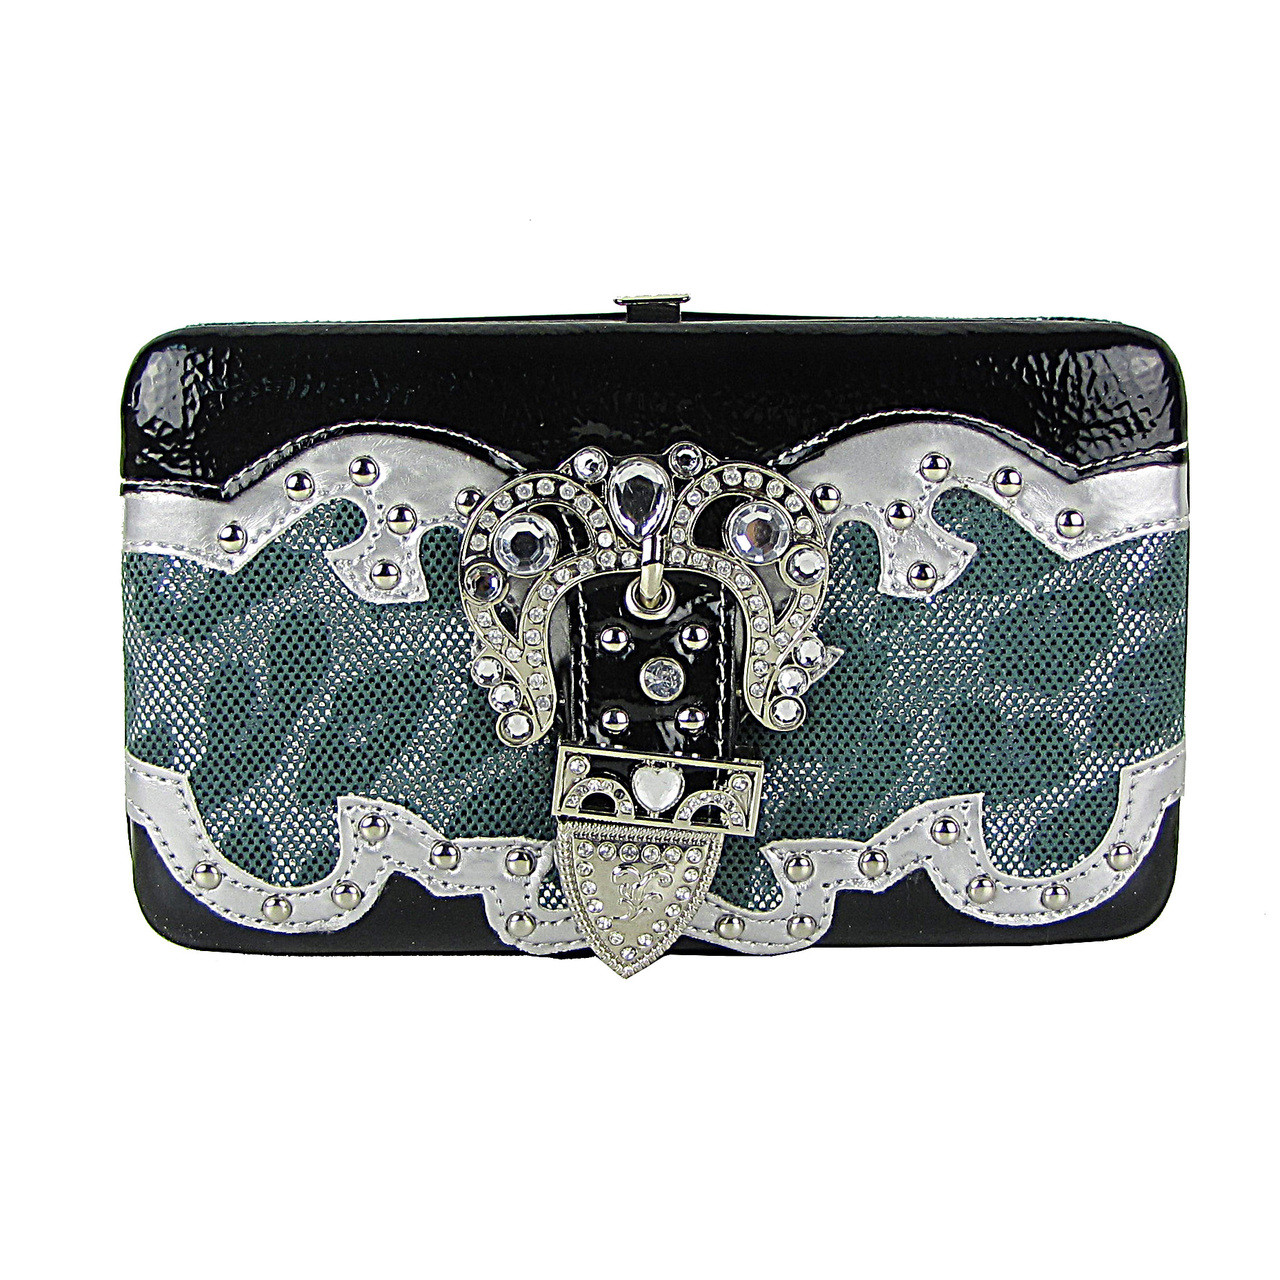 TURQUOISE LEAPORD METALLIC STUDDED RHINESTONE BUCKLE LOOK FLAT THICK WALLET FW2-12103TRQ